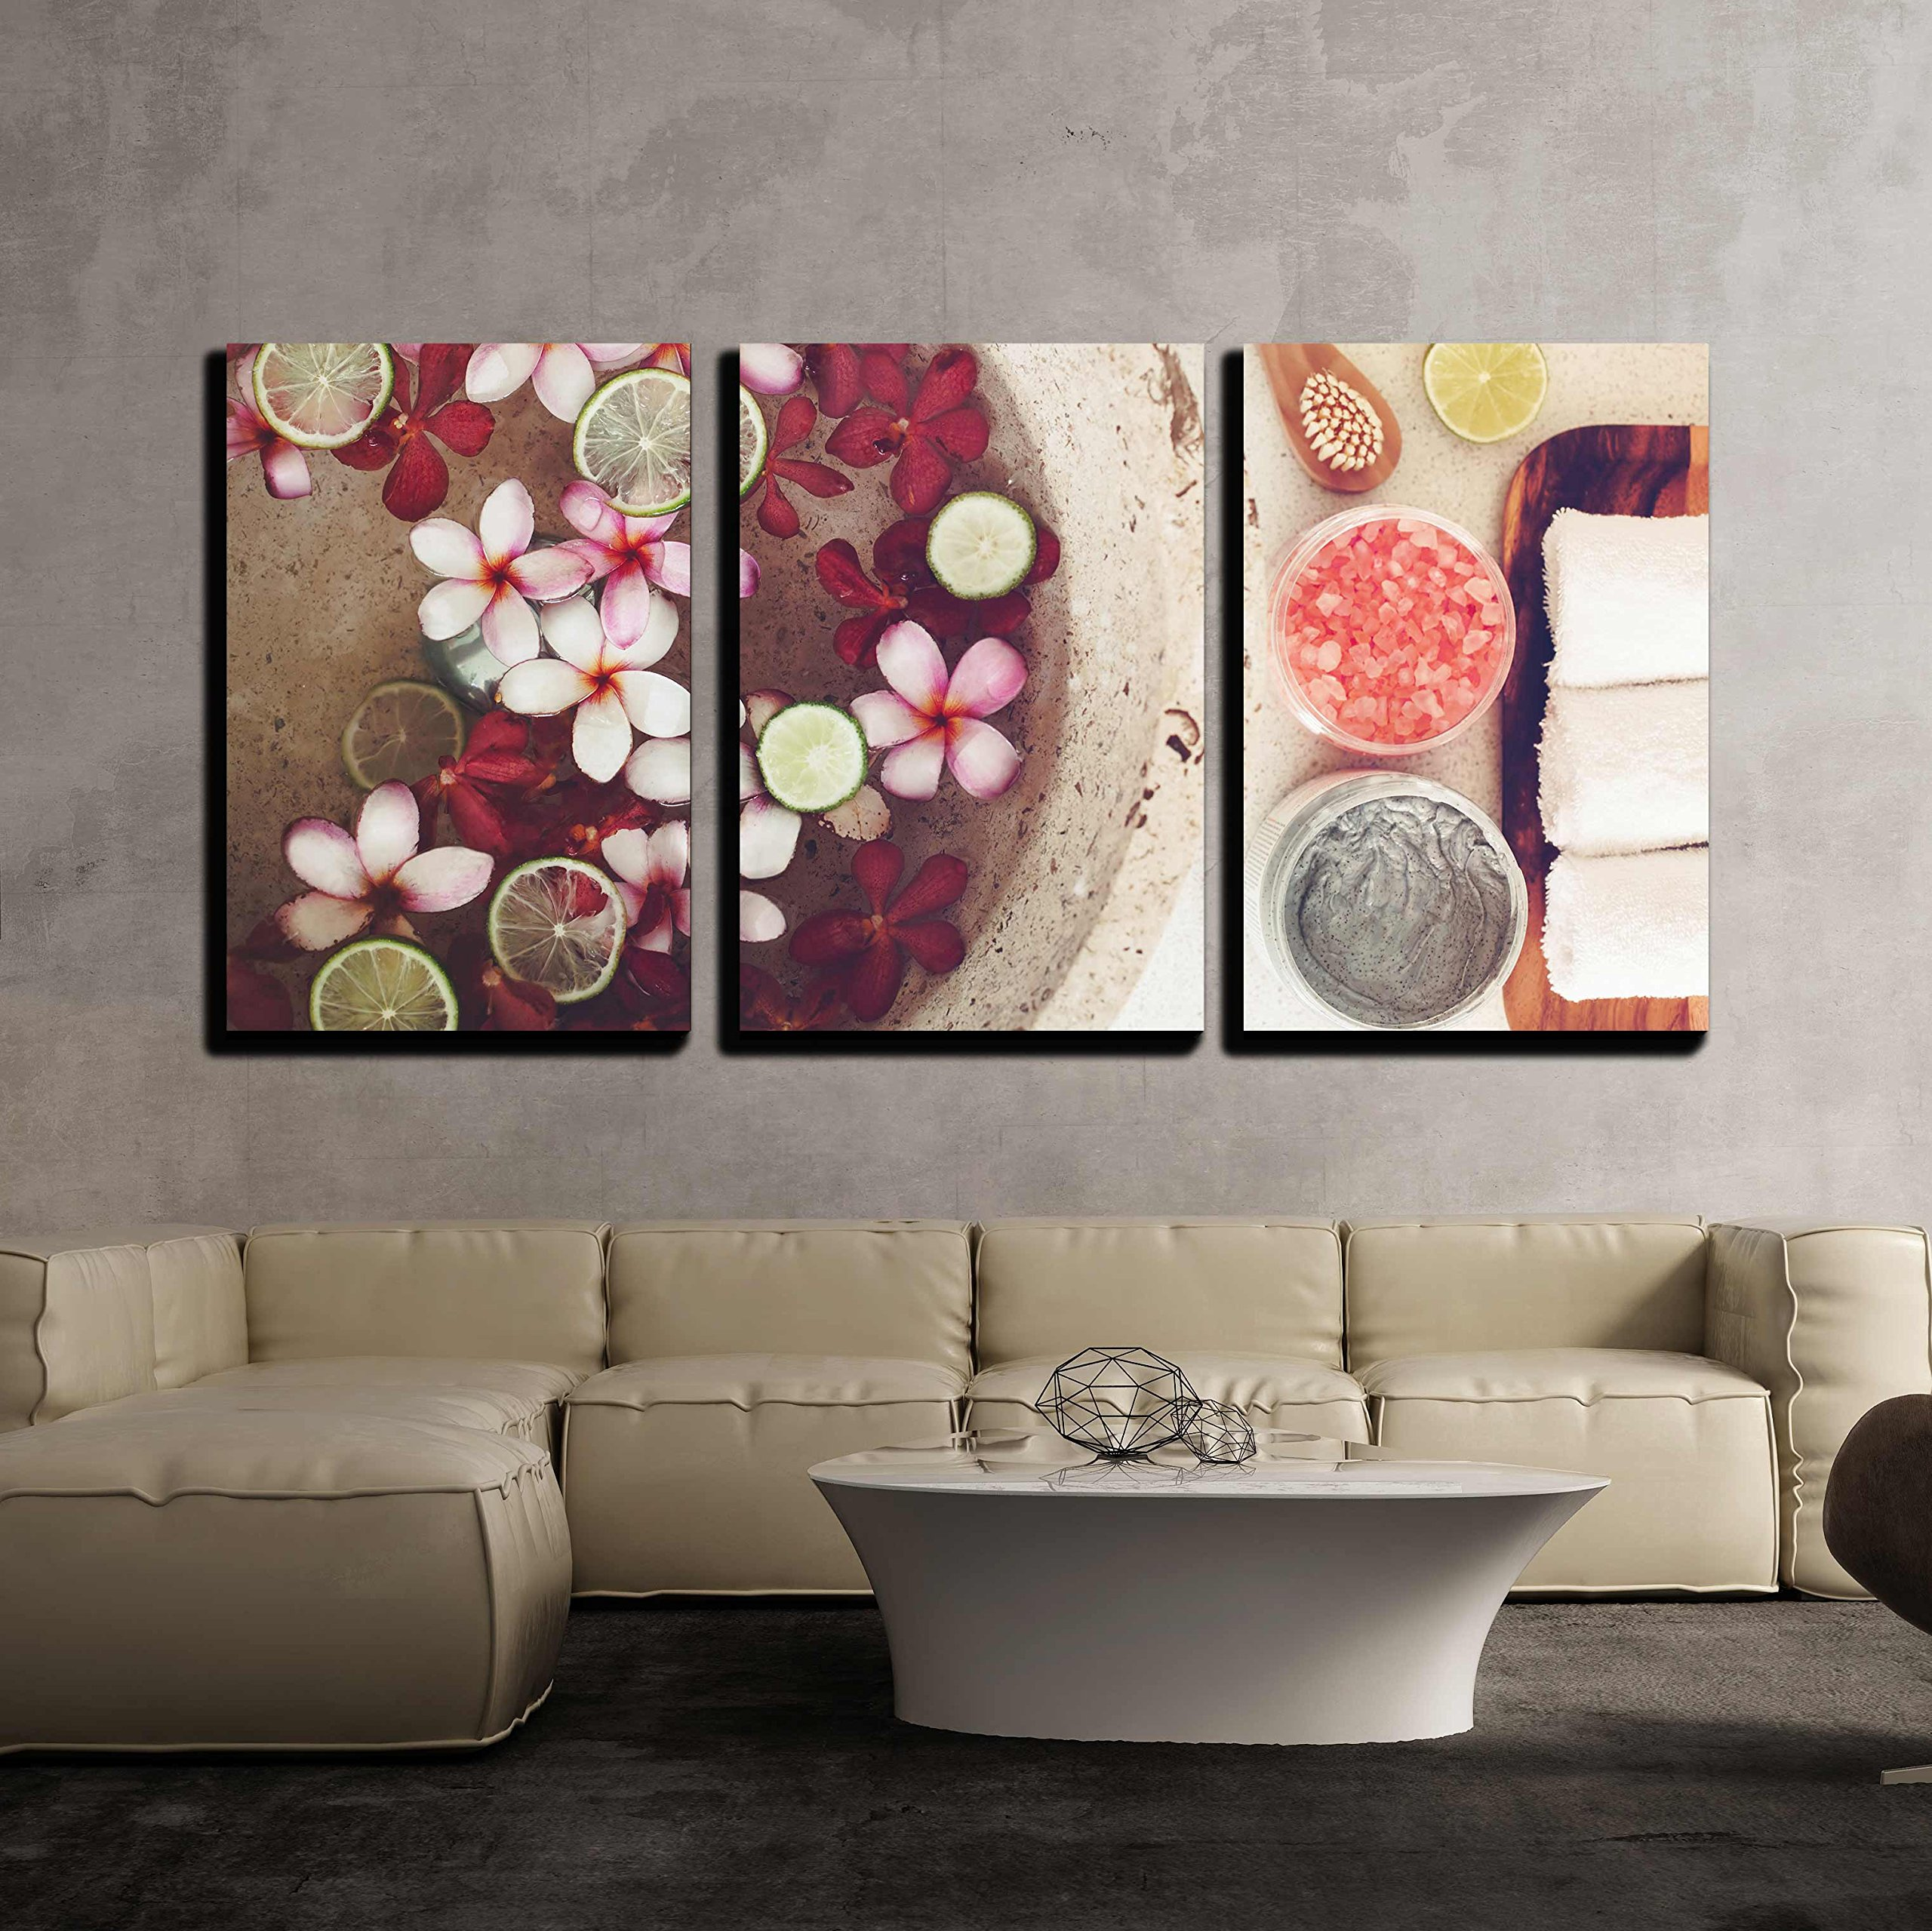 wall26 - 3 Piece Canvas Wall Art - Foot Bath in Bowl with Lime and Tropical Flowers, Spa Pedicure Treatment, Top View - Modern Home Decor Stretched and Framed Ready to Hang - 24''x36''x3 Panels